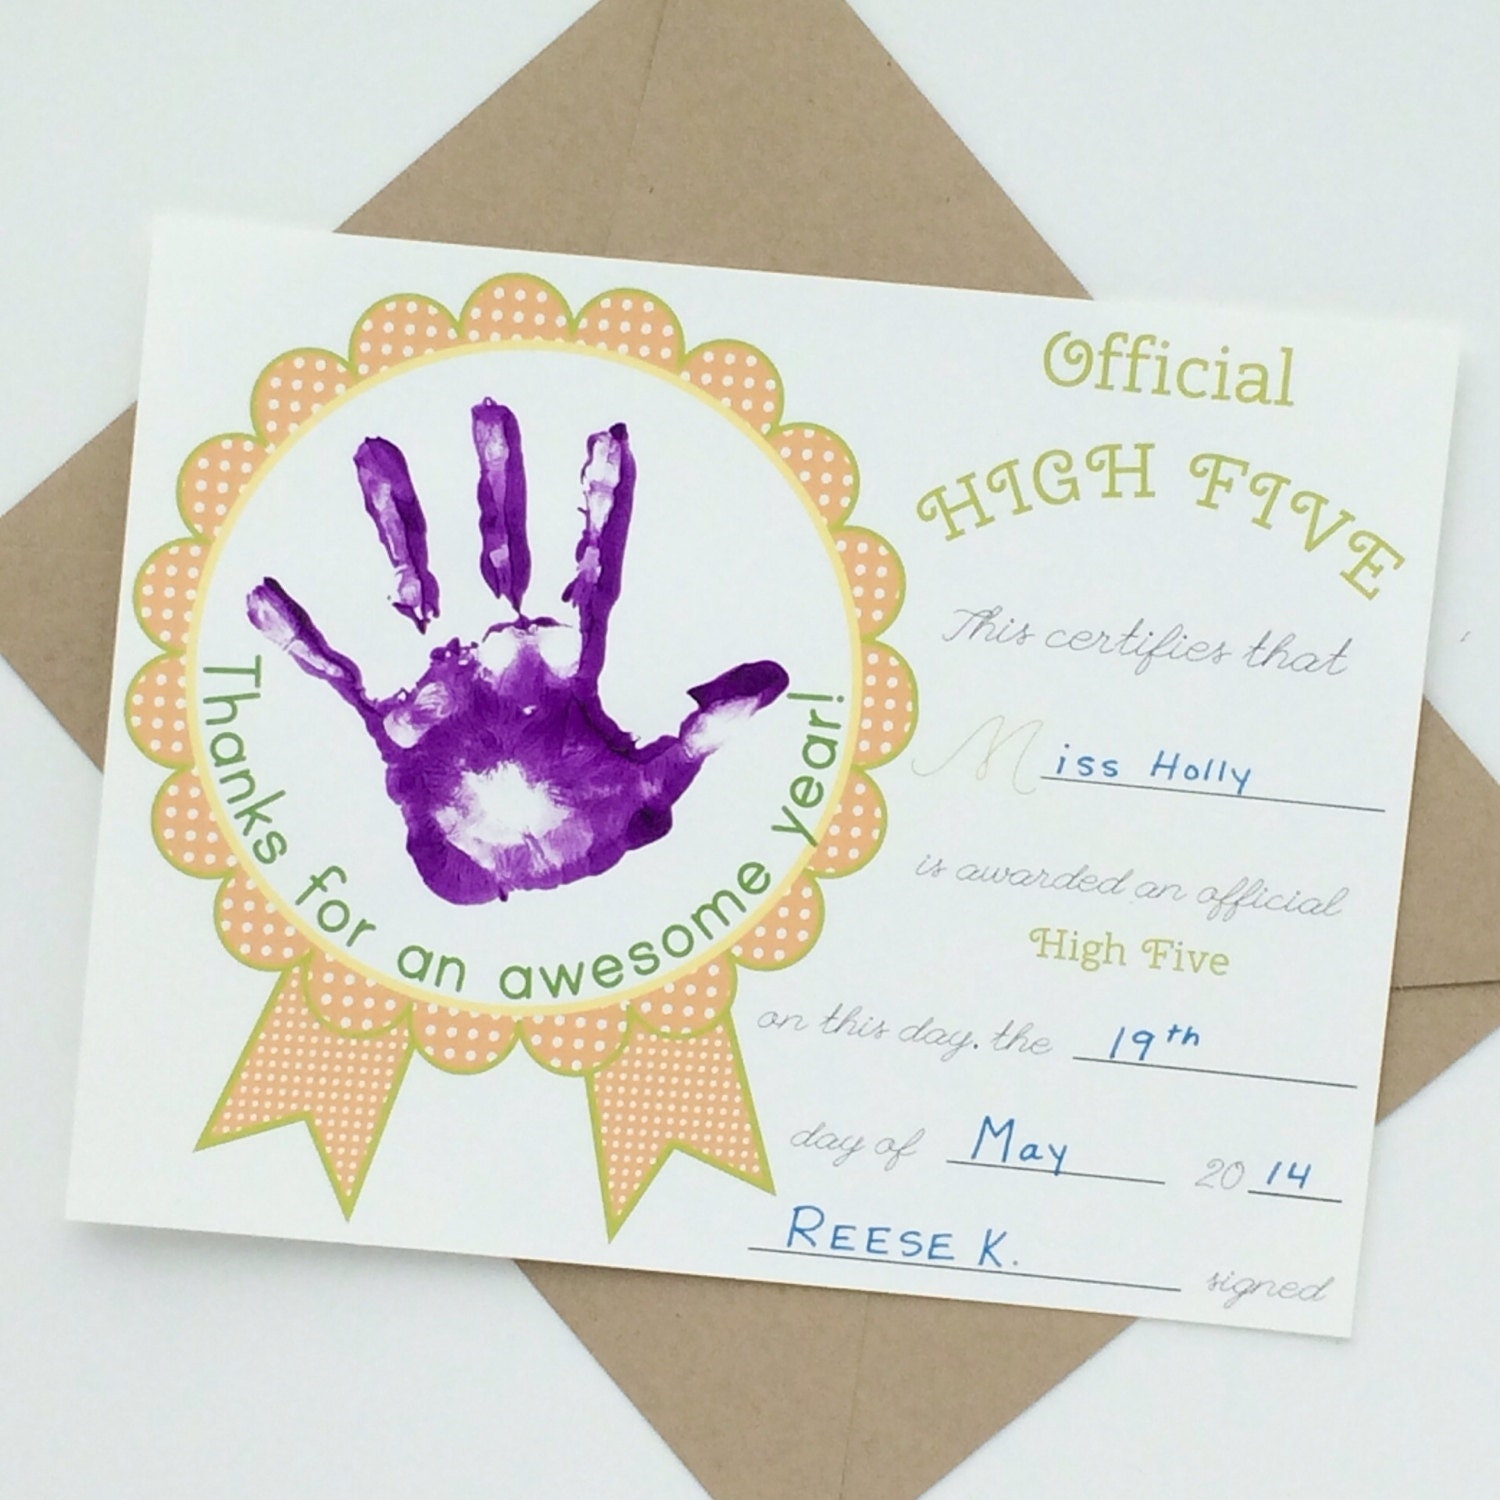 Teacher high five award certificate thank you card in zoom yelopaper Image collections